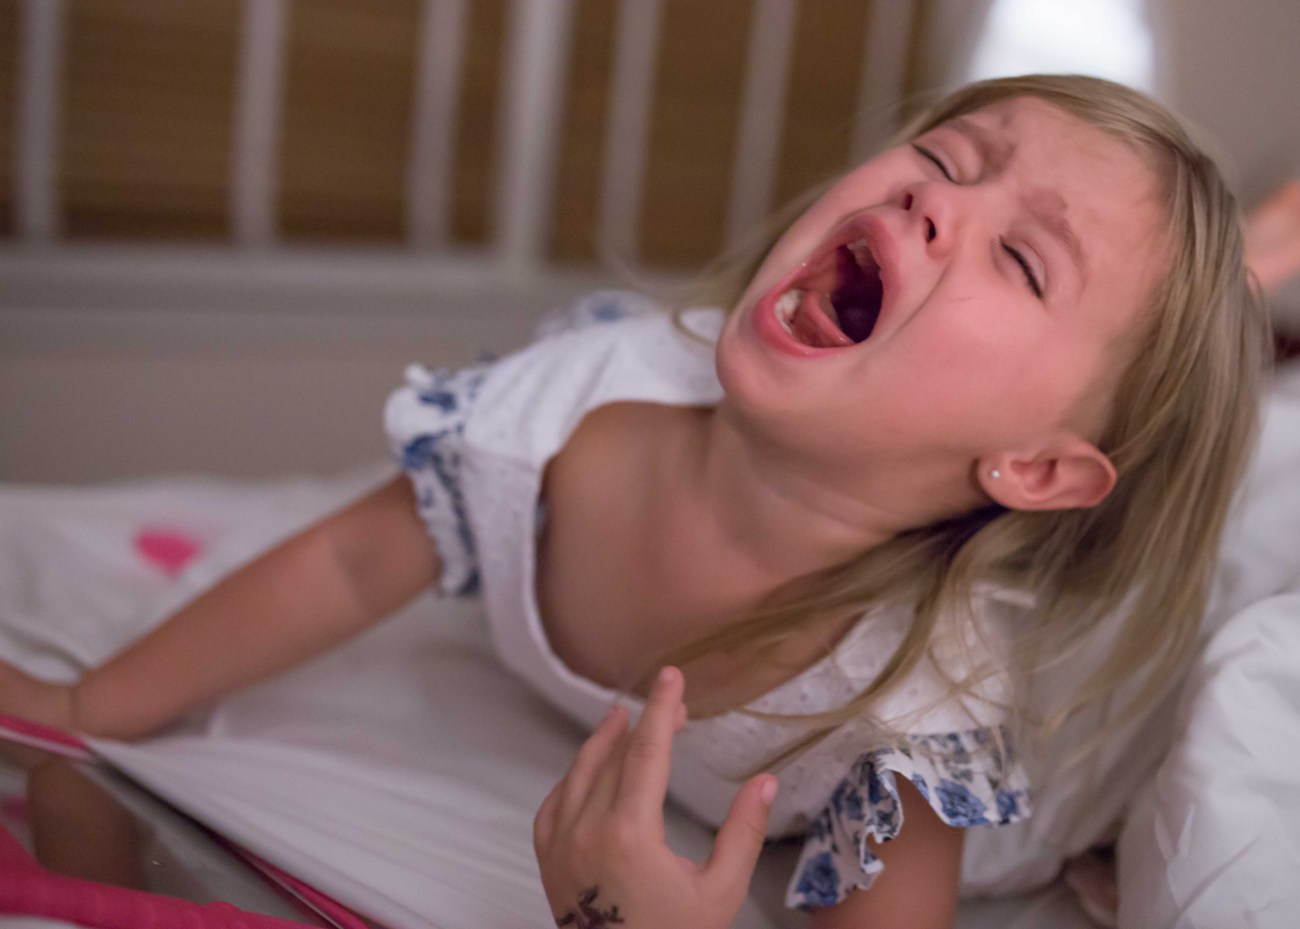 4 Reasons Why I Don't Let My Toddler Watch YouTube by Atlanta mom blogger Casual Claire